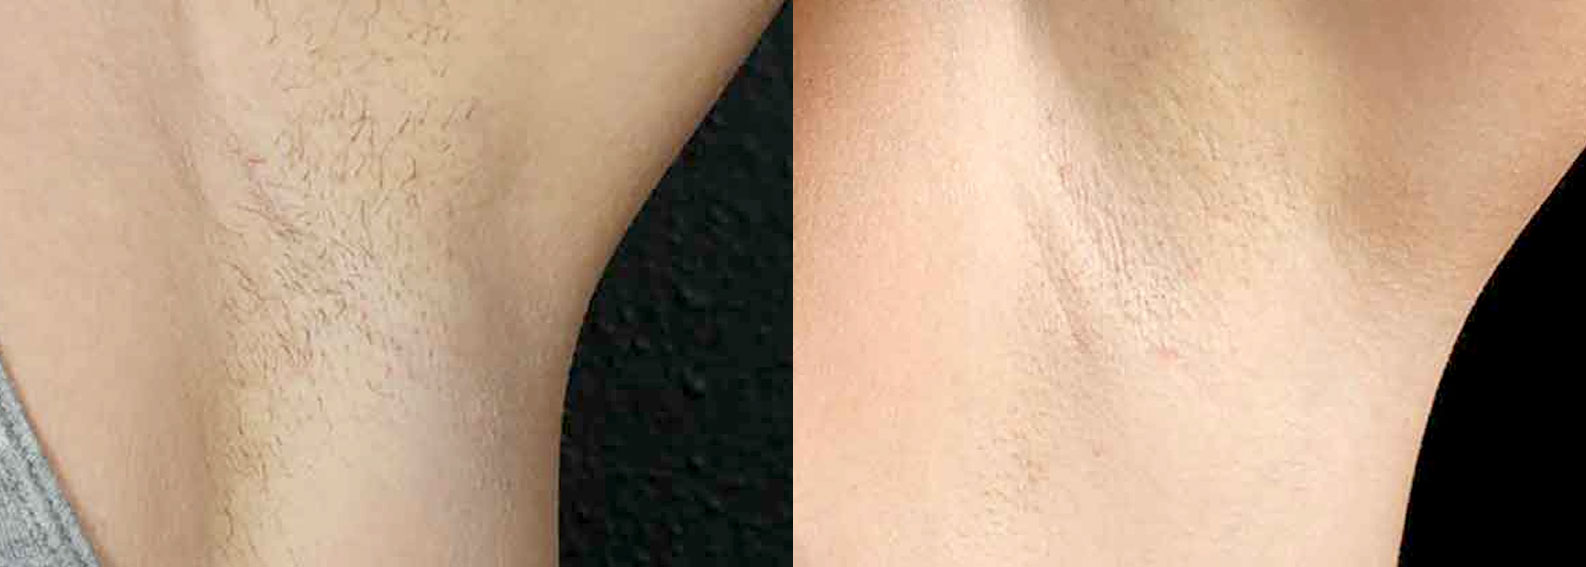 Laser Hair Removal with Cutera CoolGluide